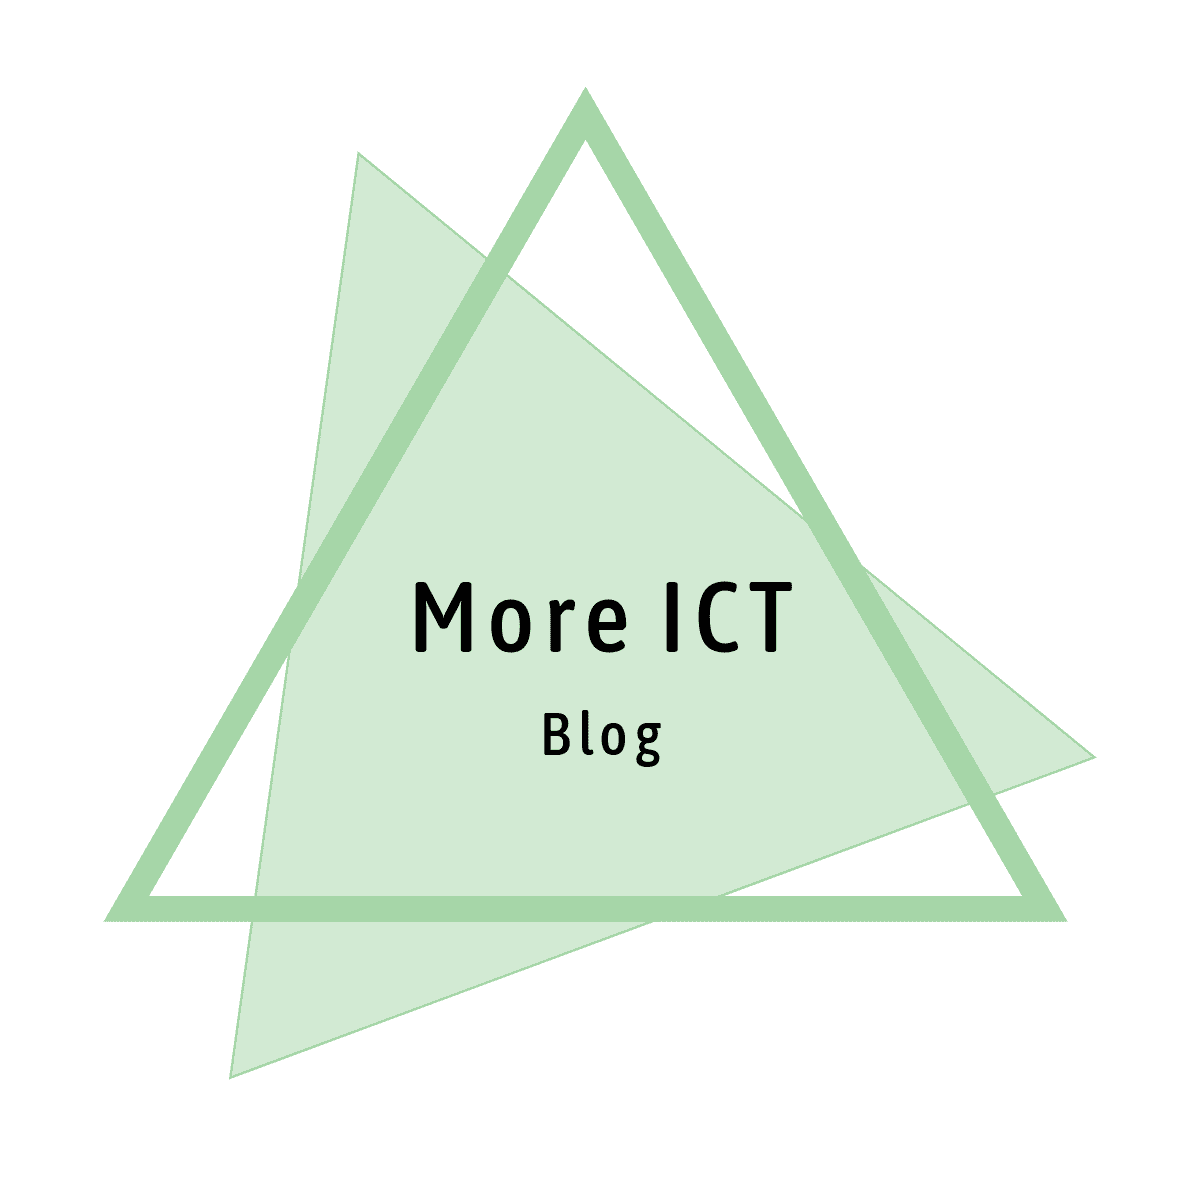 Moreict